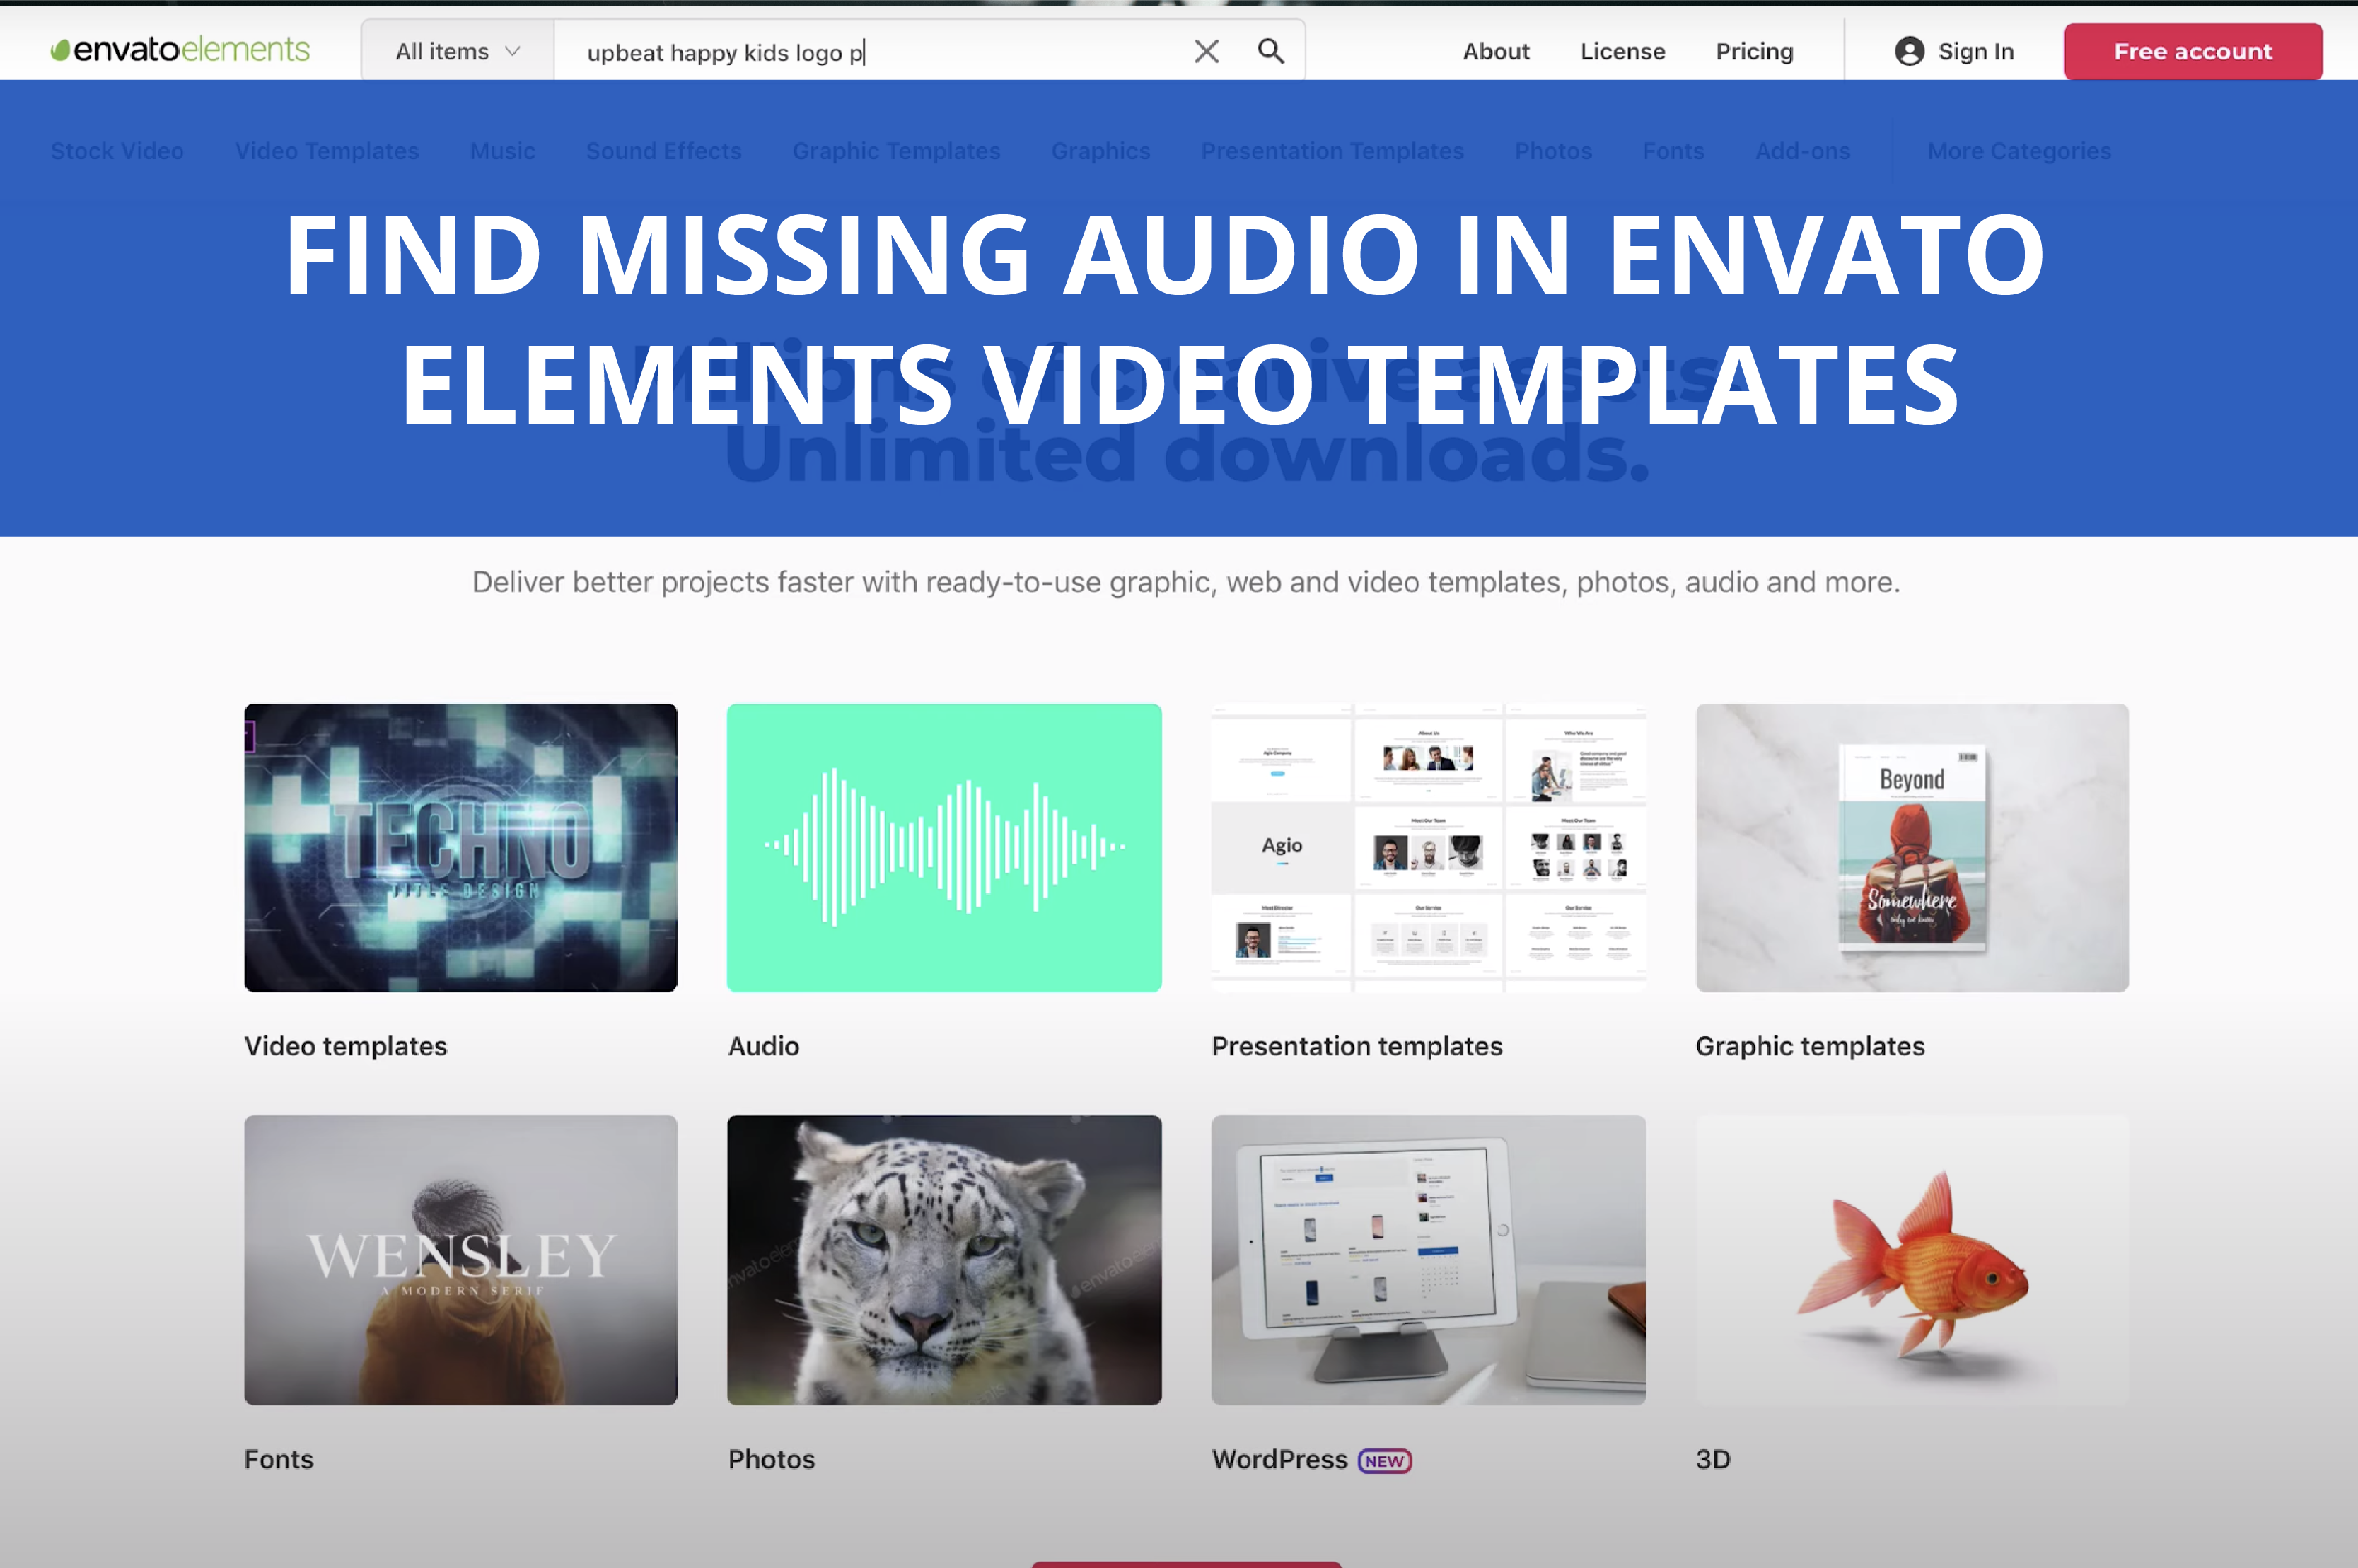 3 Quick Steps For Envato Users To Find The Missing Audio In Elements Video Templates ⏱️